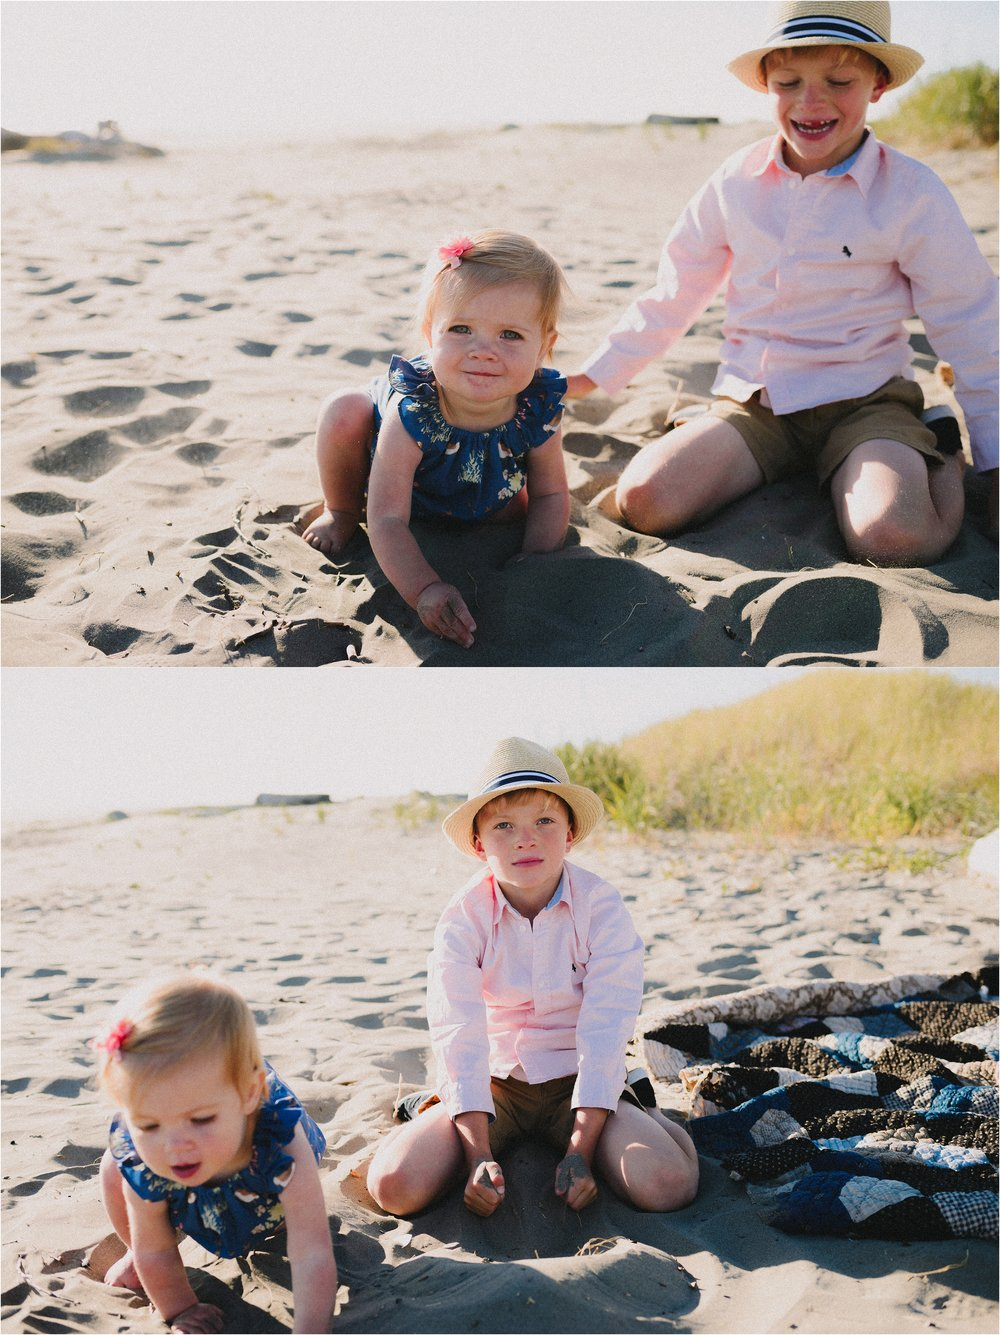 pacific-beach-washington-family-session-jannicka-mayte-anchorage-alaska-family-photographer_0003.jpg